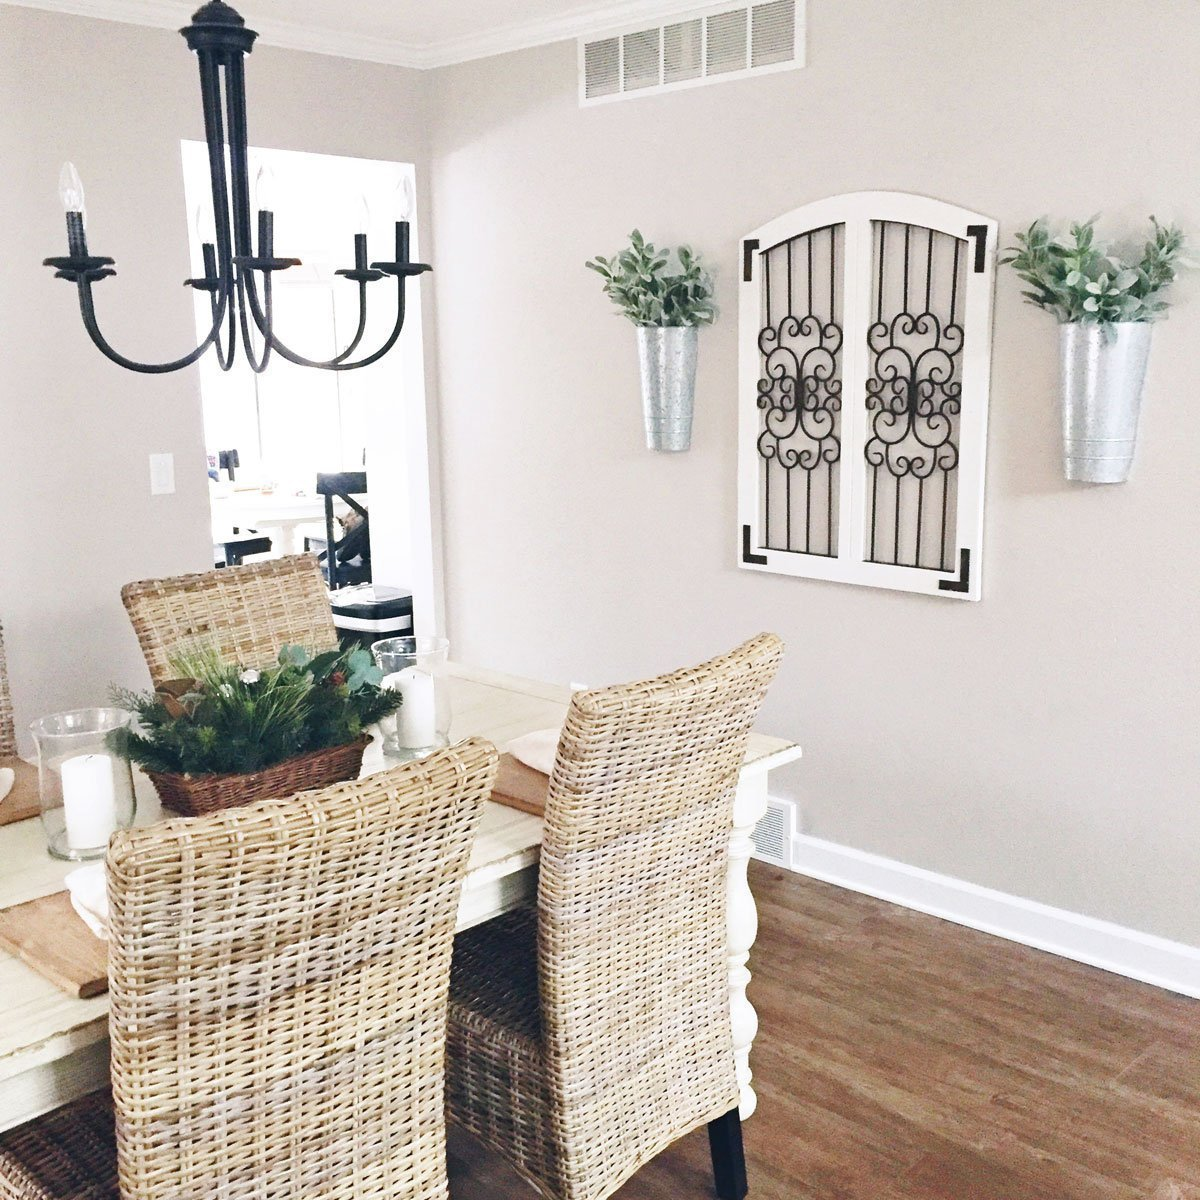 5 Home Projects We Hope to Accomplish in 2017 neutral farmhouse dining room decor